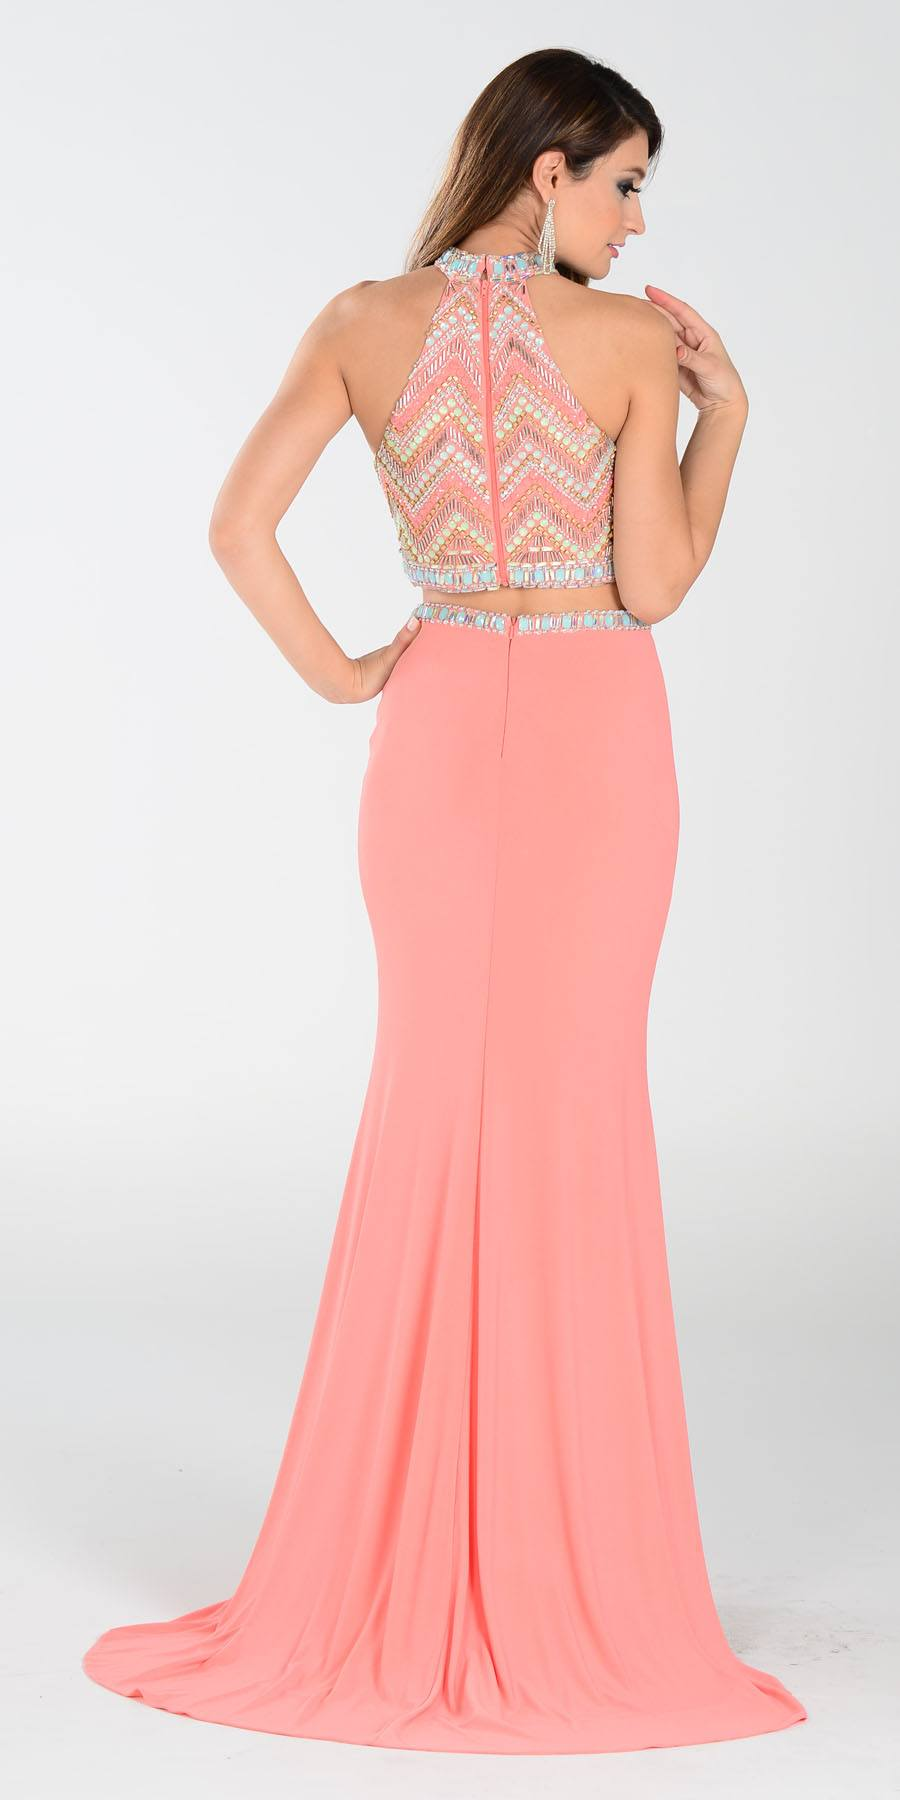 Poly USA 7366 Long 2 Piece Prom Gown Turquoise Choker Neck Strap ...